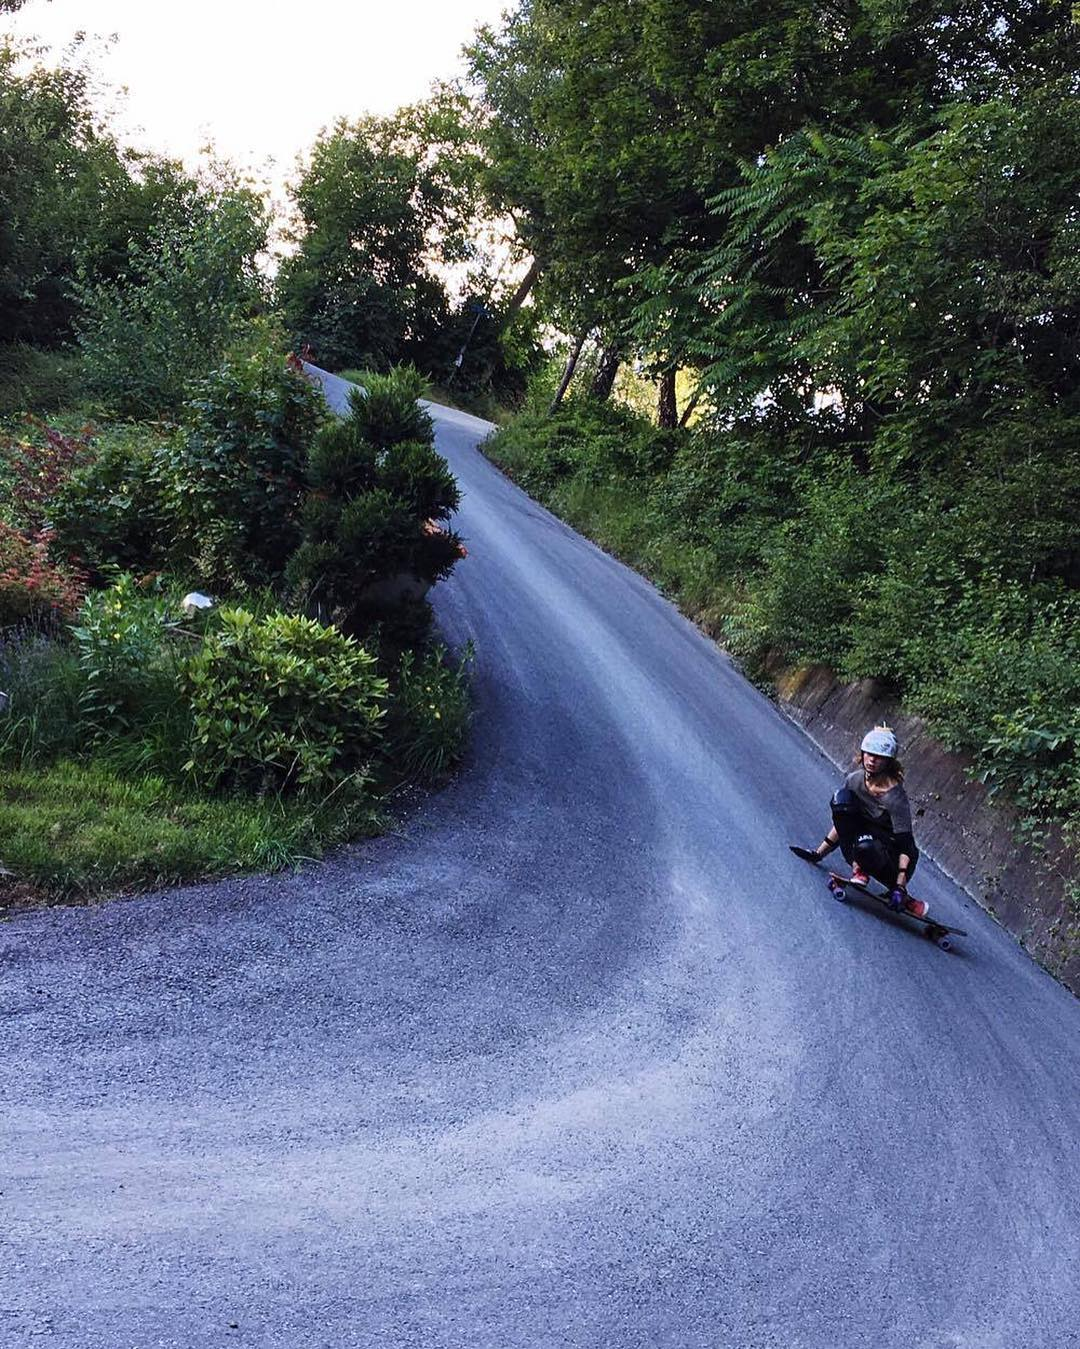 @rosanne_onboard hitting the steeps on her Keystone. #downhill #skateboarding #longboardlife